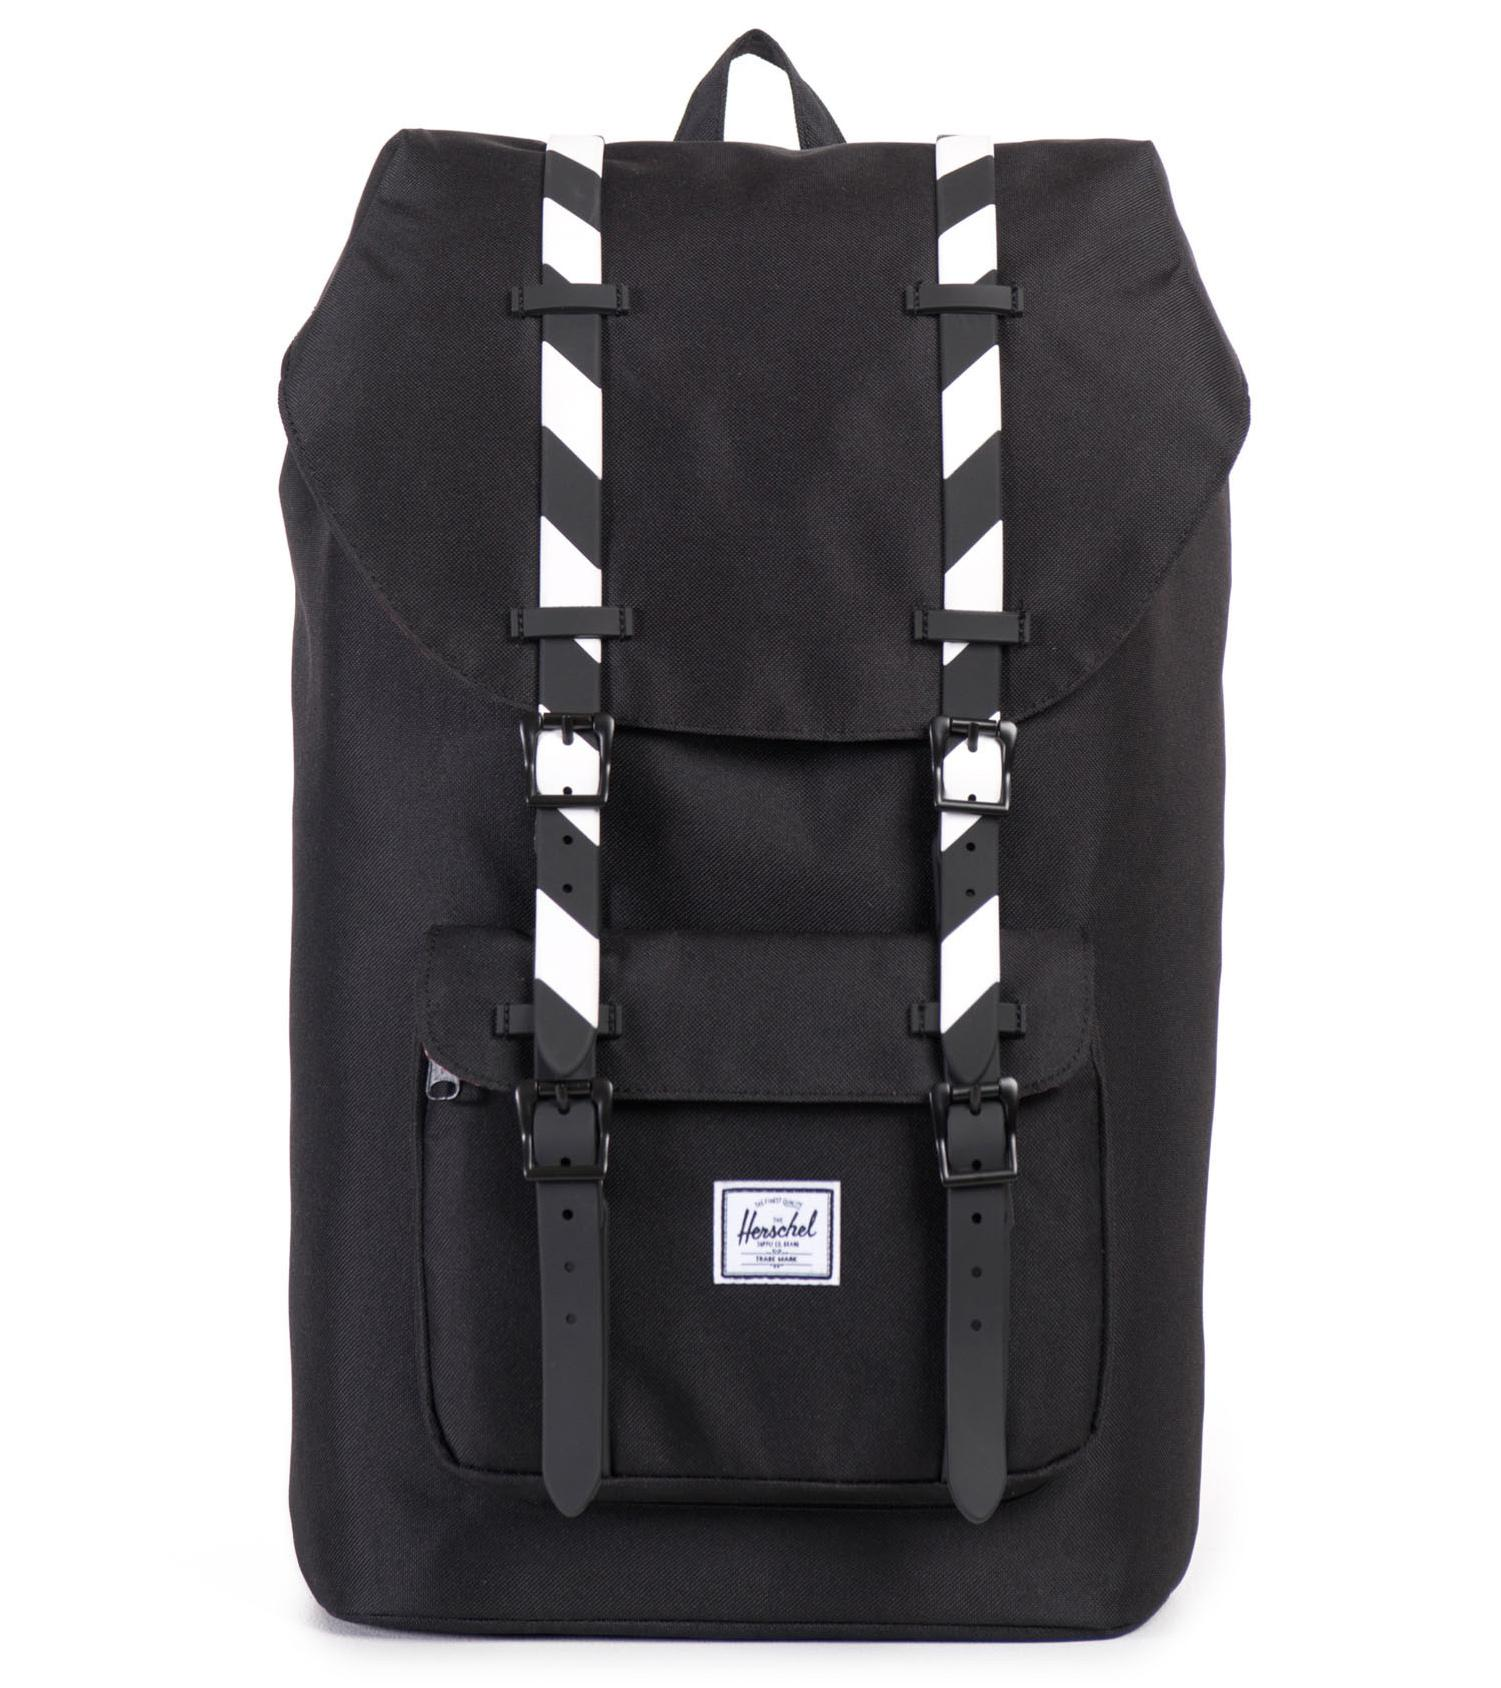 e91b3fb278c7 Men Fashion backpacks - Buy Men Fashion backpacks at Best Price in ...